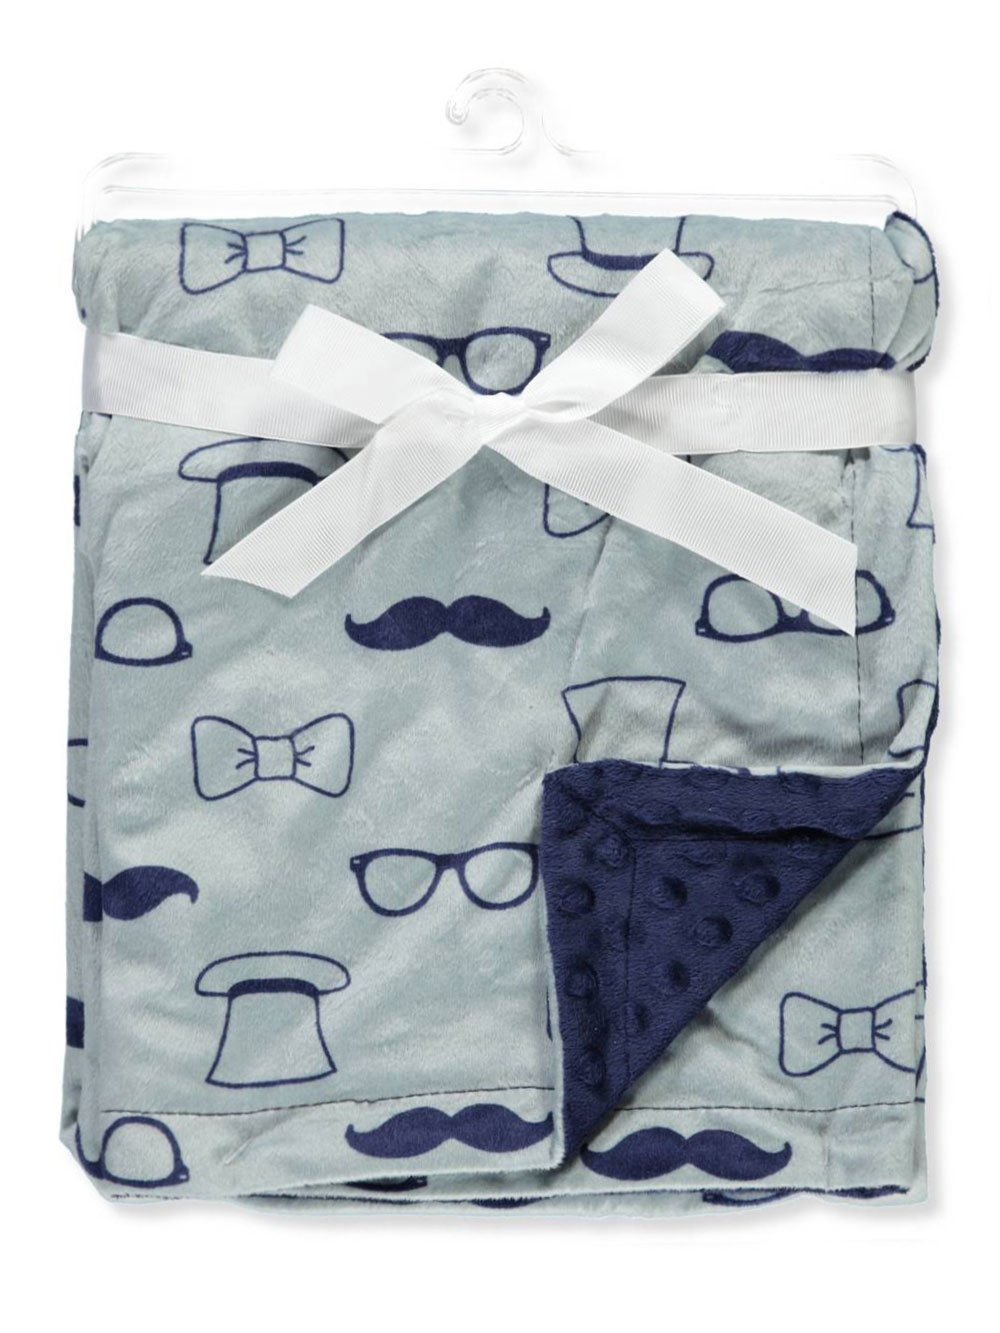 Hudson Baby Printed Mink Blanket with Dotted Backing Blue Giraffe